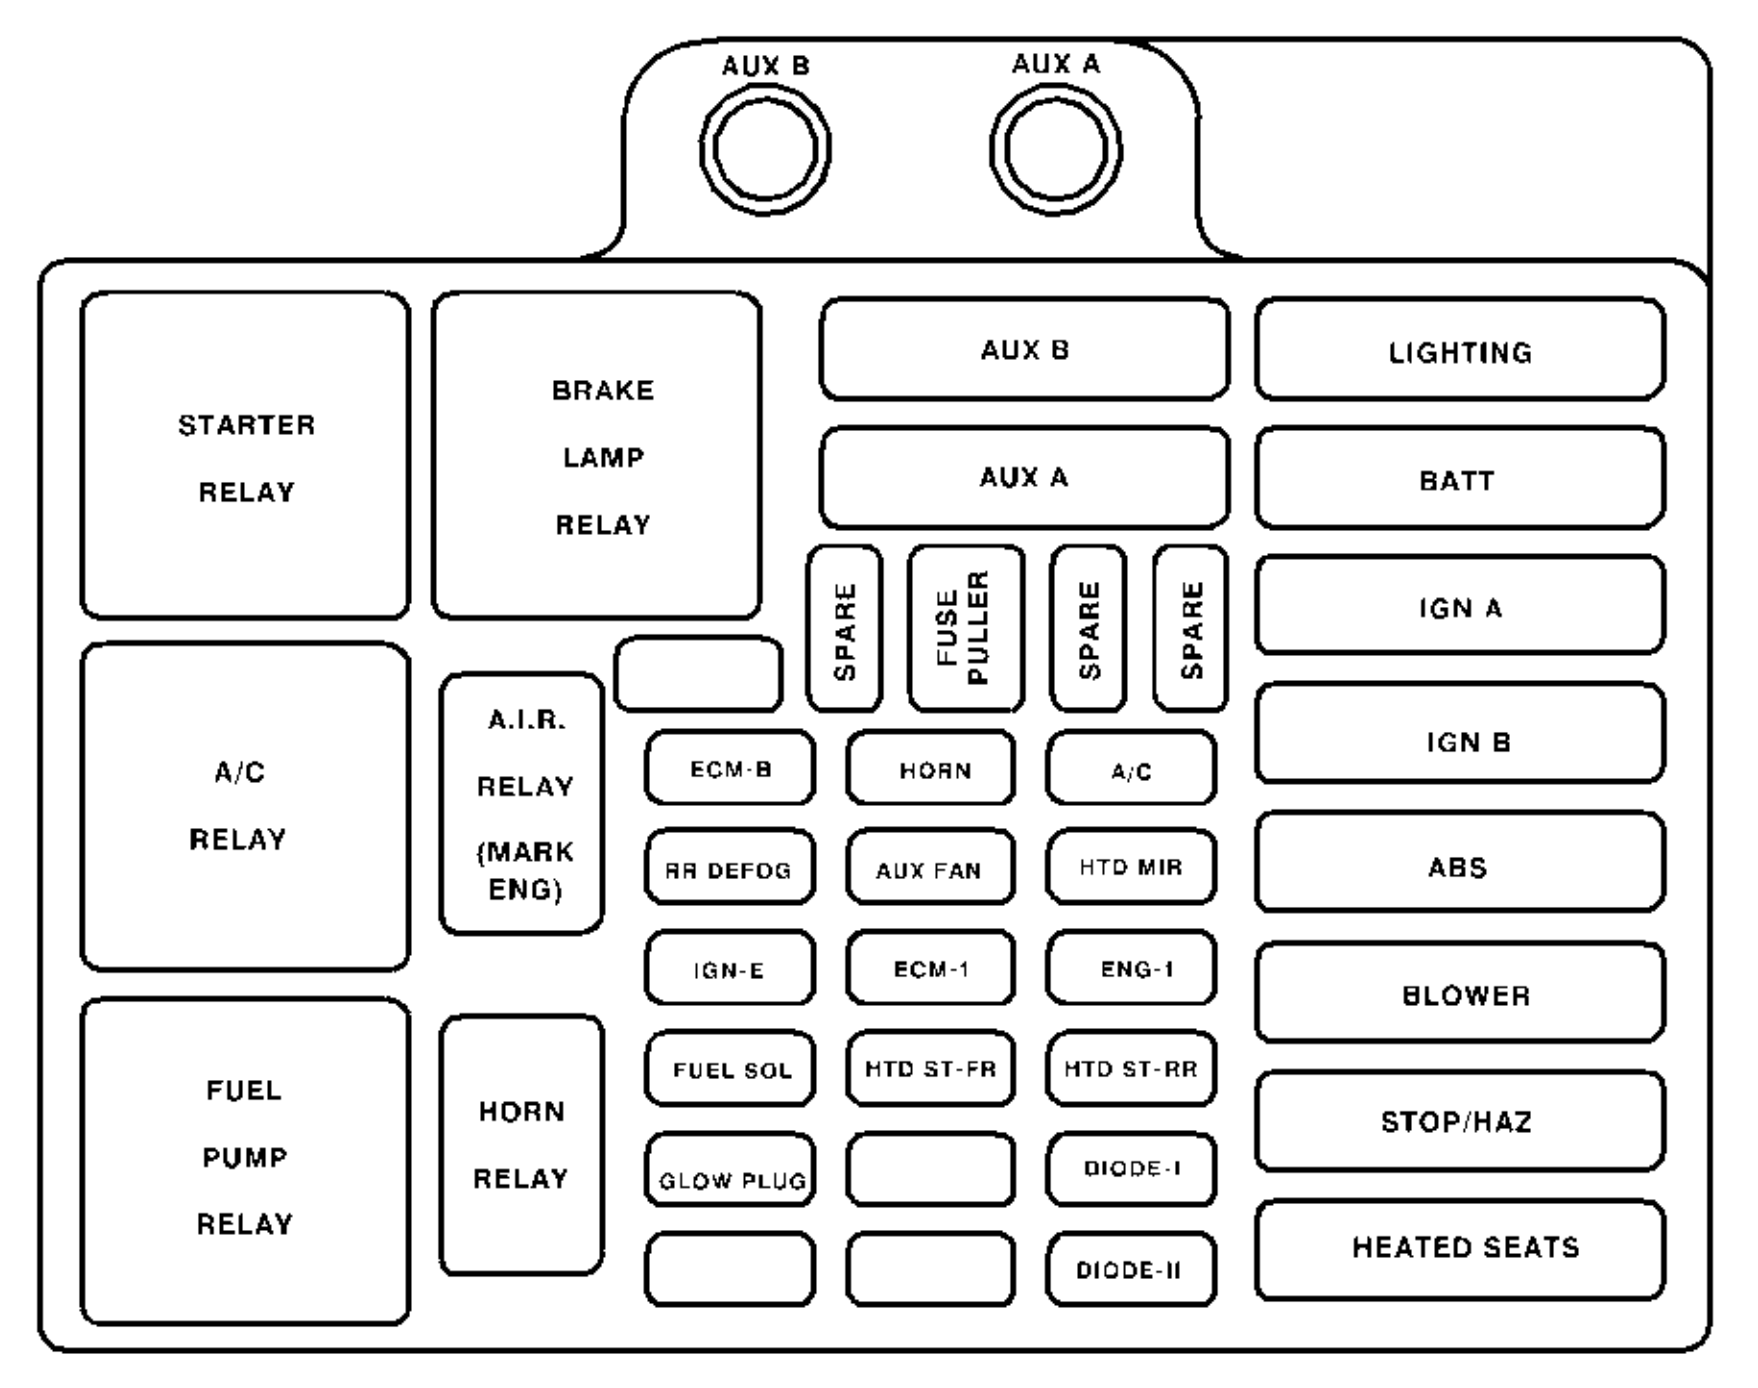 hight resolution of 89 gm fuse box electrical wiring diagram 89 gm fuse box